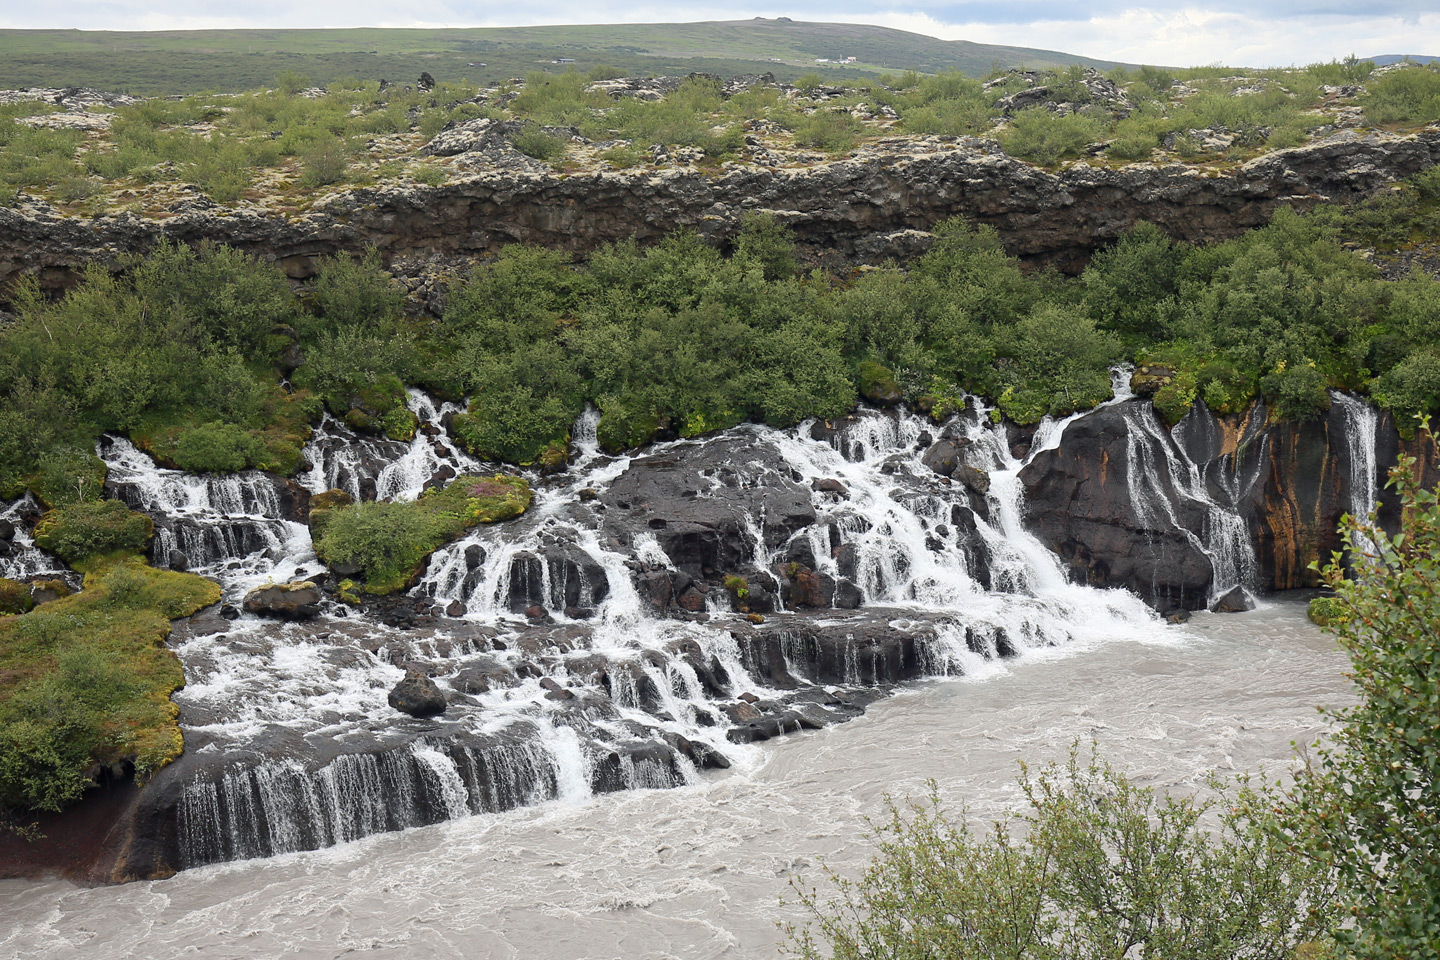 Hraunfossar waterfall, with groundwater emerging from a lava flow into a glacial meltwater stream.